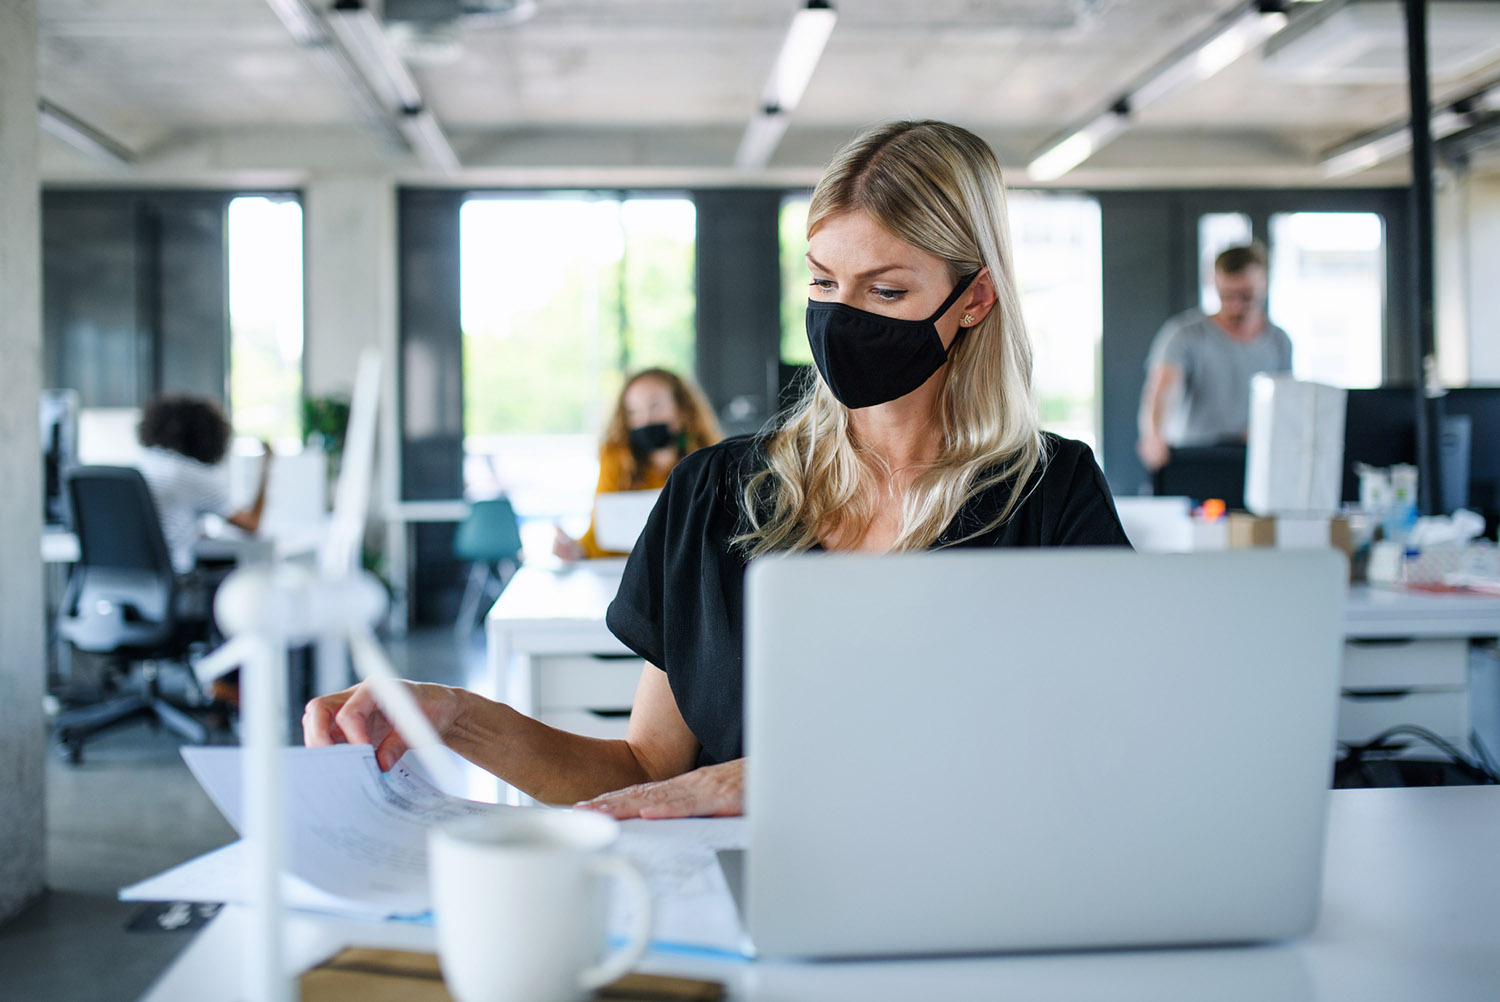 Minnesota's Face Covering Order: What is a Business to Do?